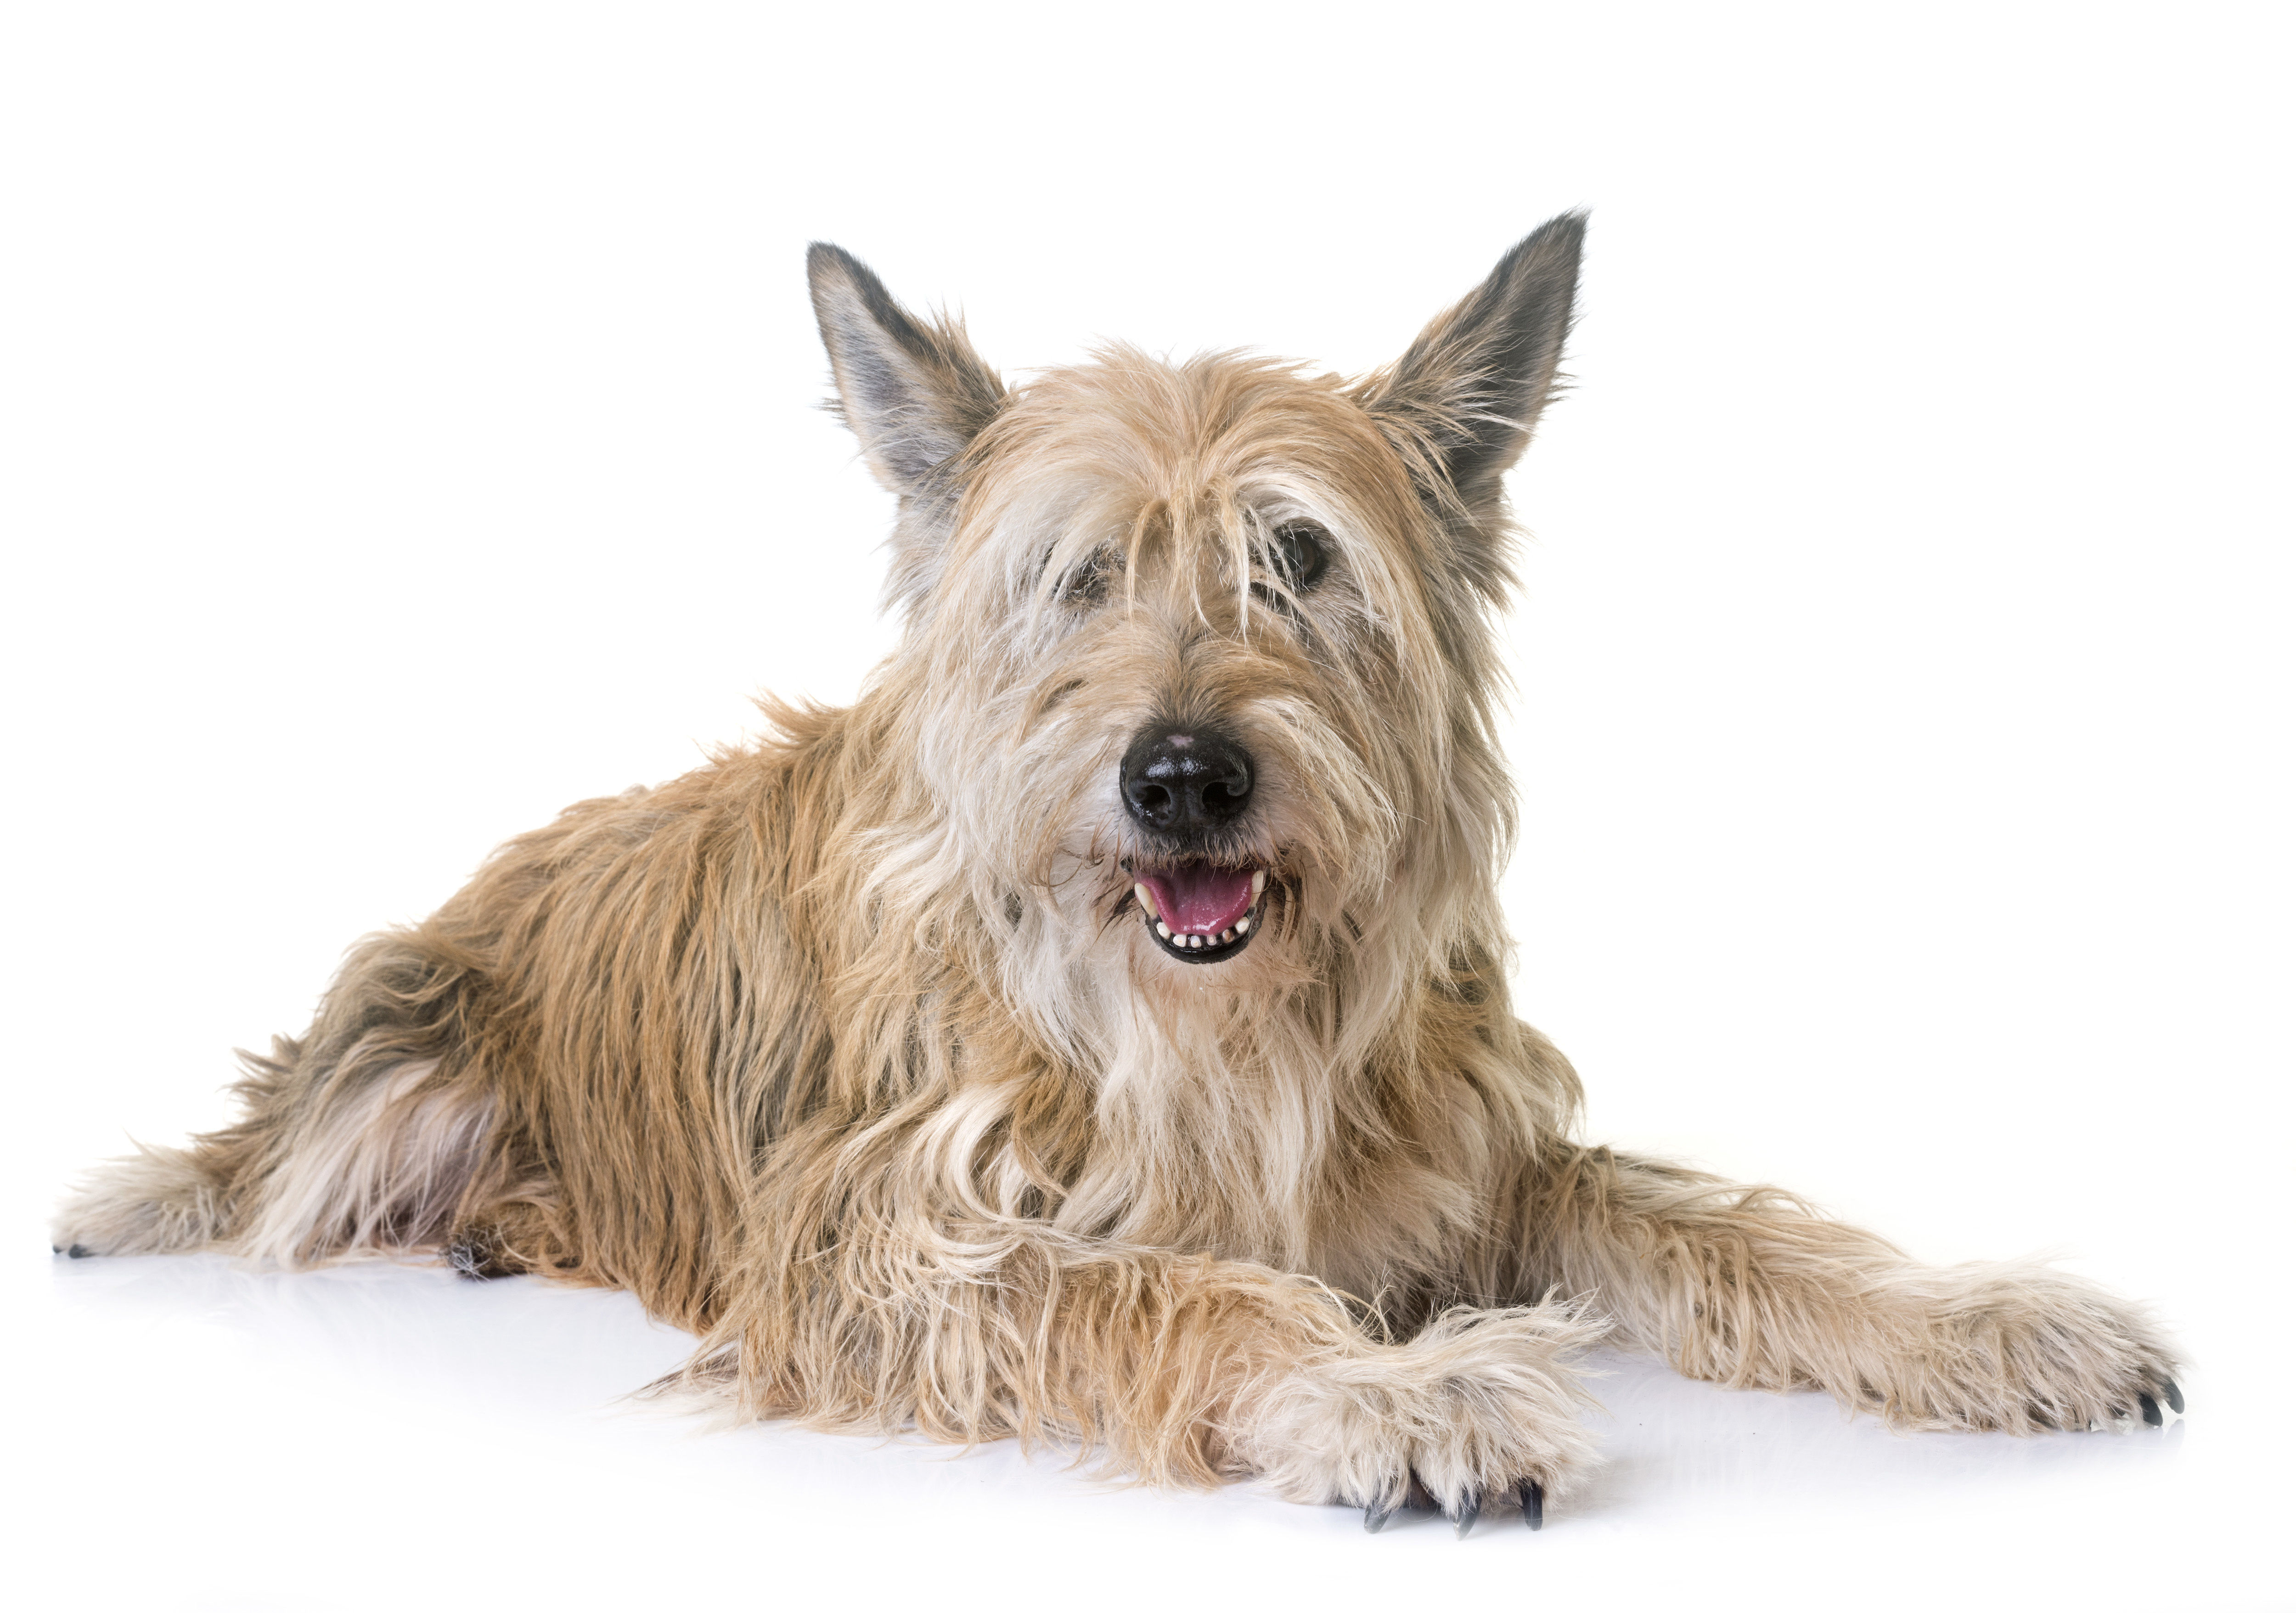 Berger Picard dog lying down in front of white background